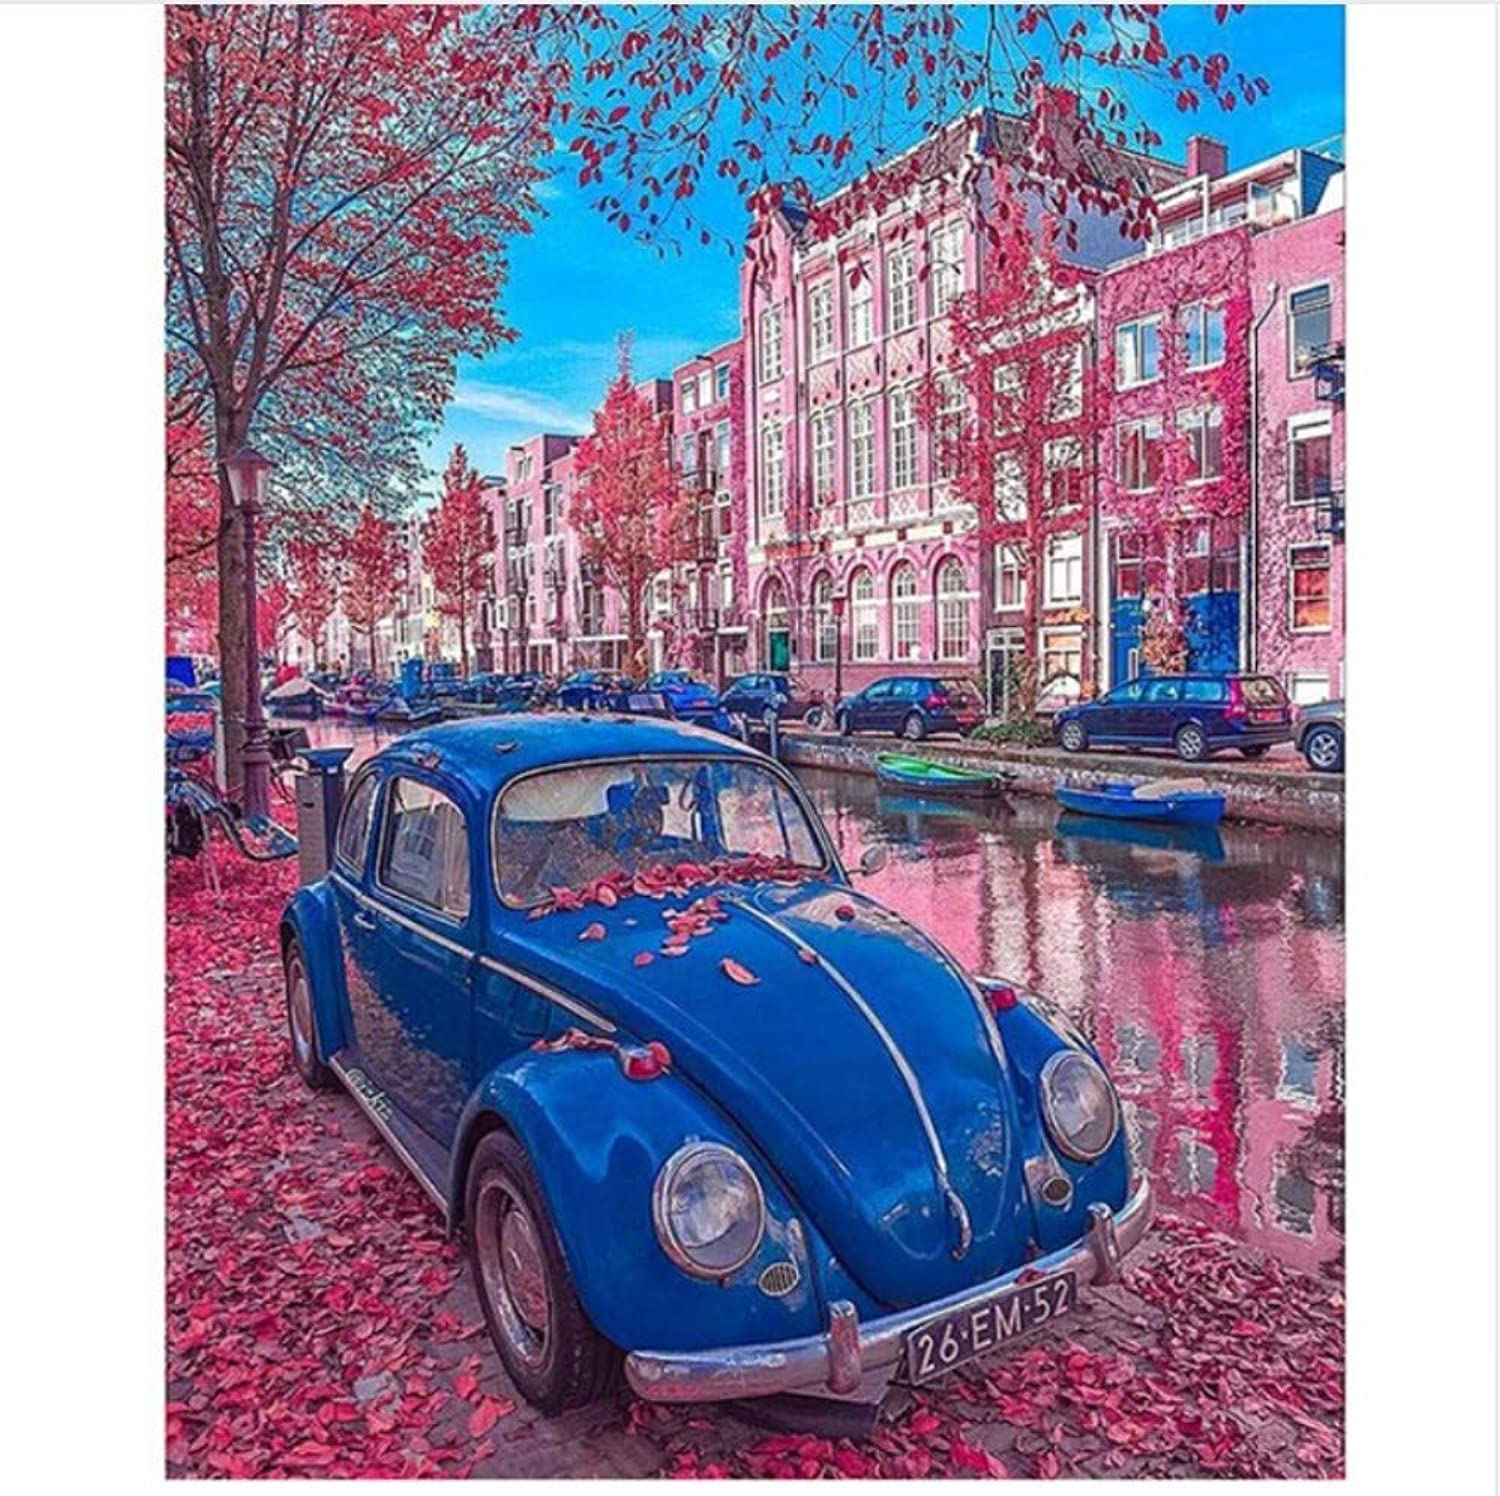 Jigsaw Puzzle 1000 Piece bluee Car Red Street Classic Puzzle DIY Kit Wooden Toy Unique Gift Home Decor